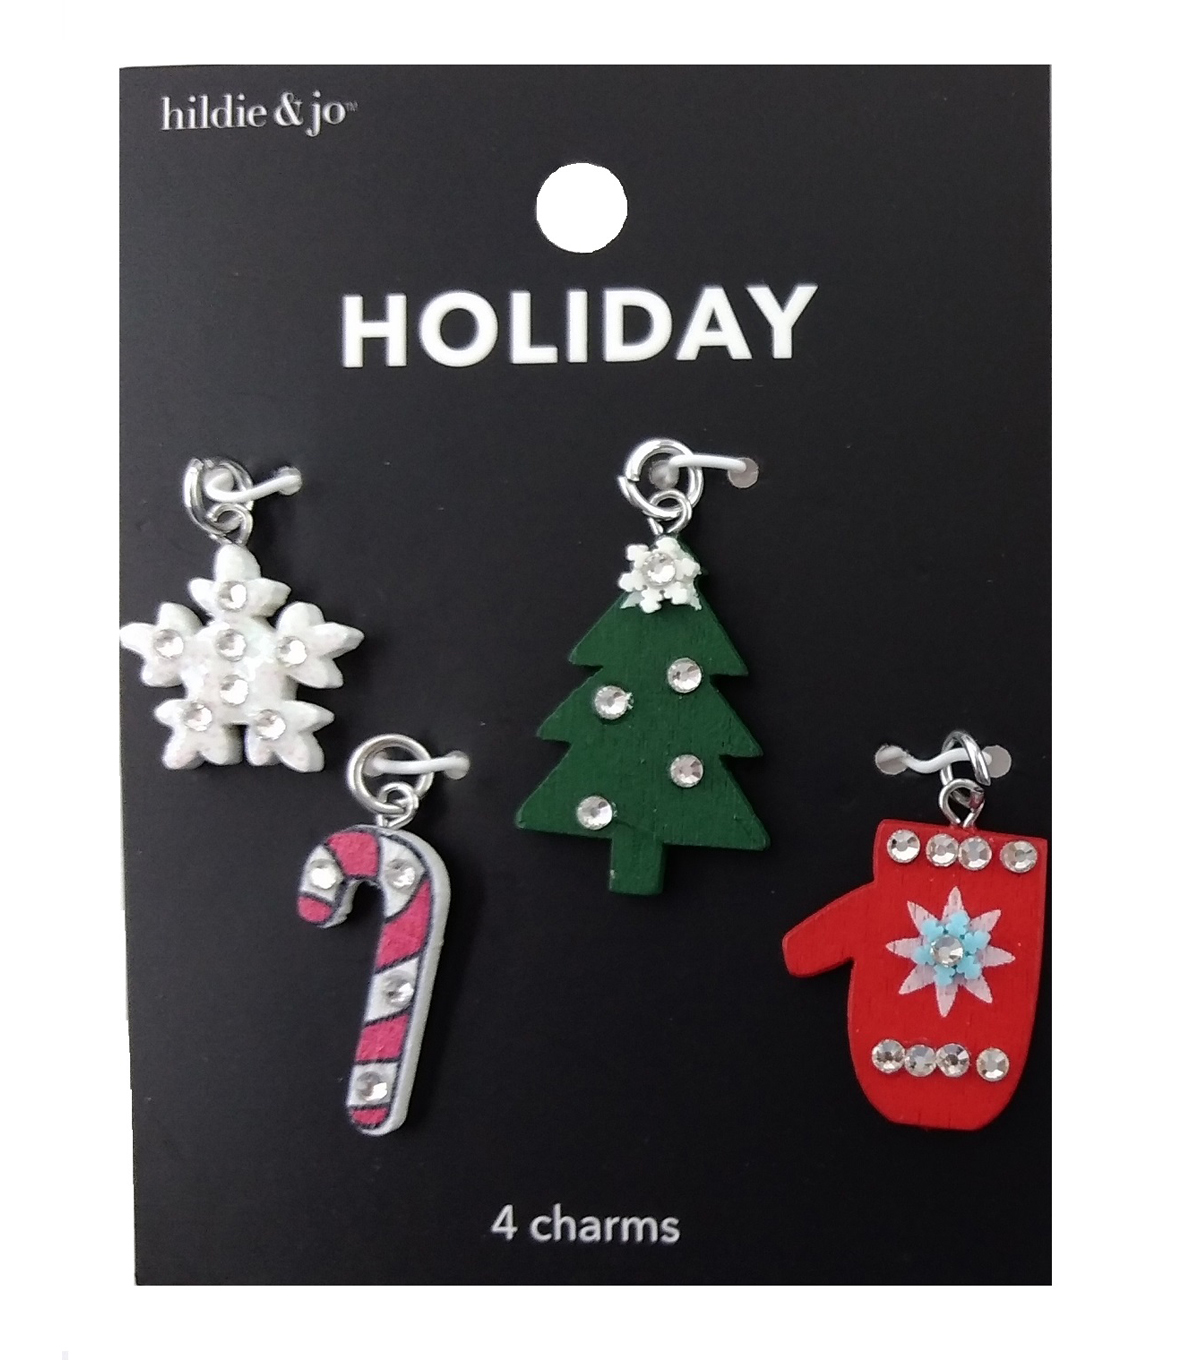 hildie & jo Holiday Charms-Wood